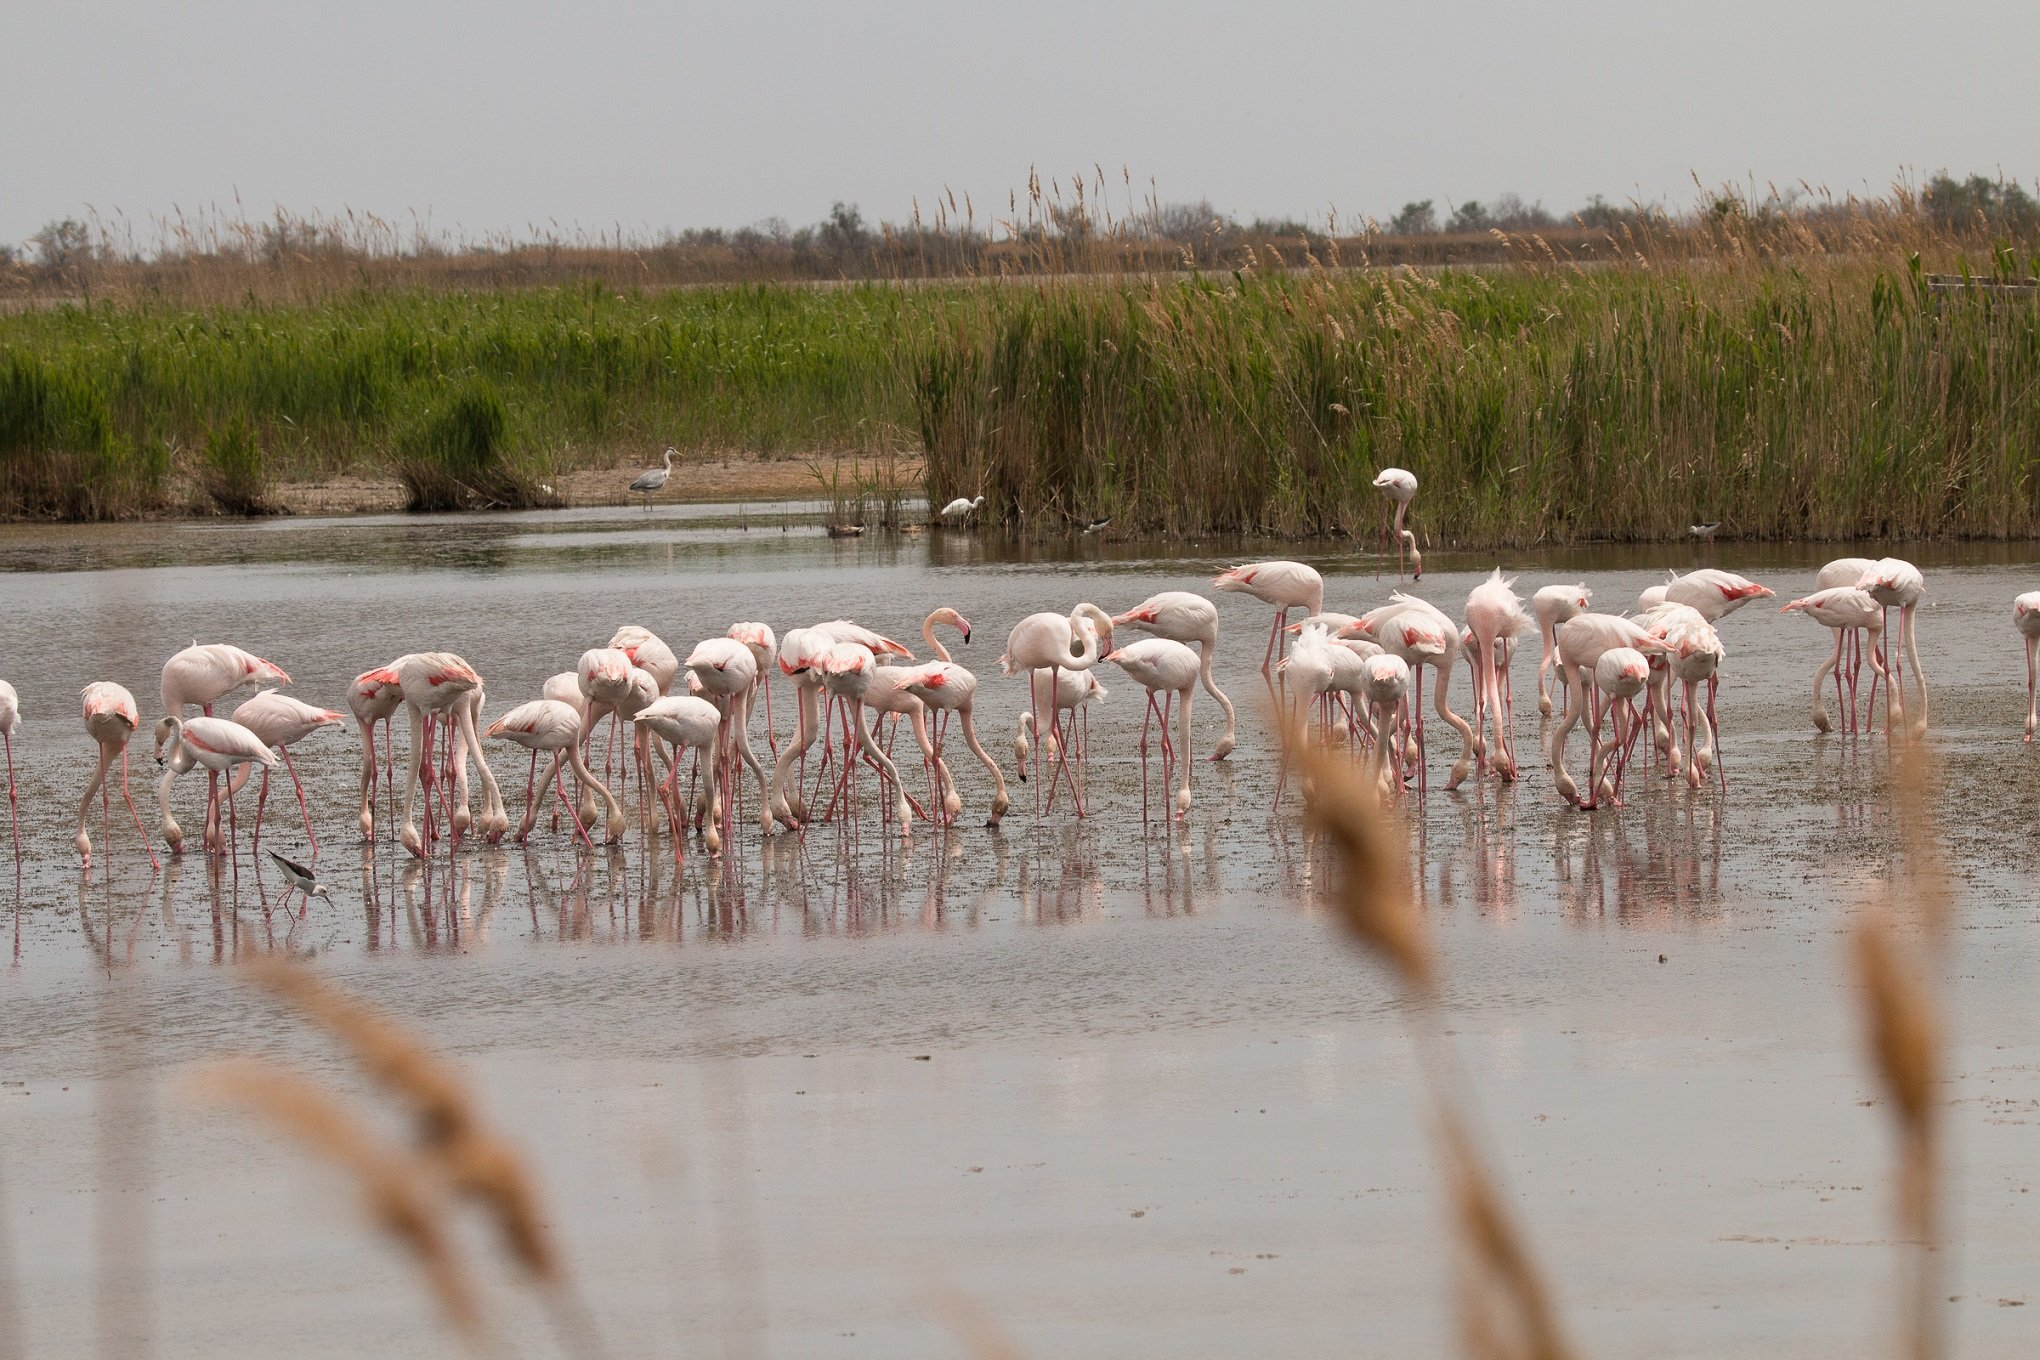 Satellite data can show environmental shifts in protected areas like the Camargue wetlands, where rising sea levels have a damaging impact.